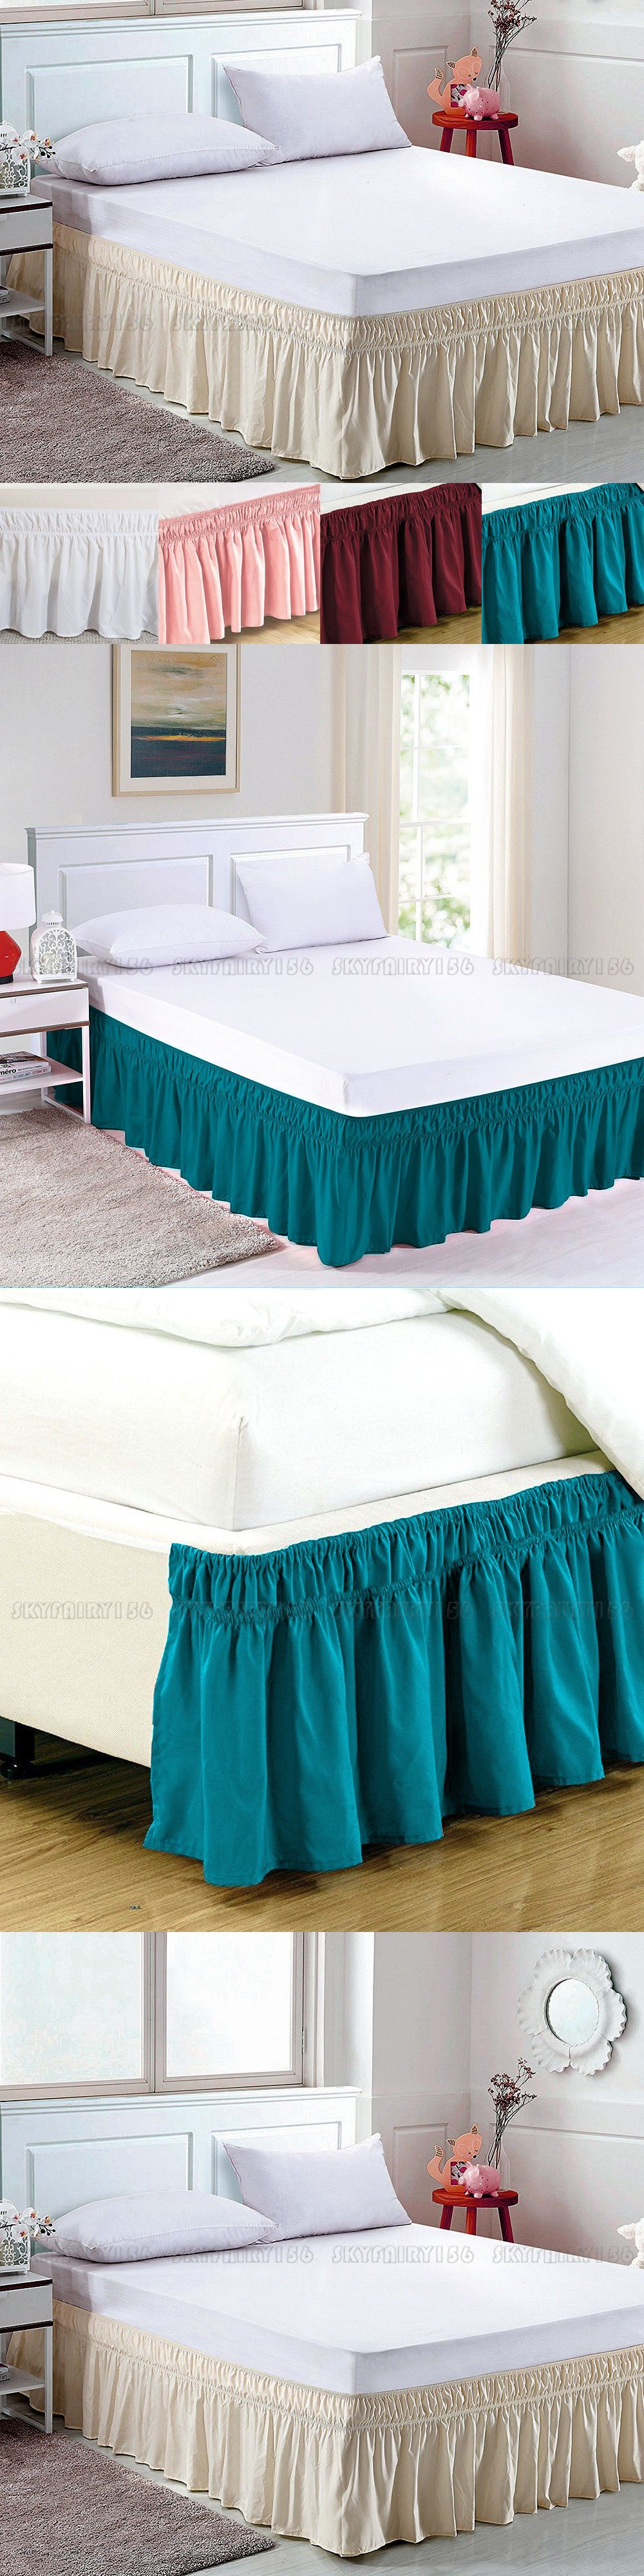 Elastic Bed Skirt Dust Ruffle Easy Fit Wrap Around Twin Full Queen King Size Ebay Bedskirt Bed Skirt Ideas Modern Bed Skirts Ideas